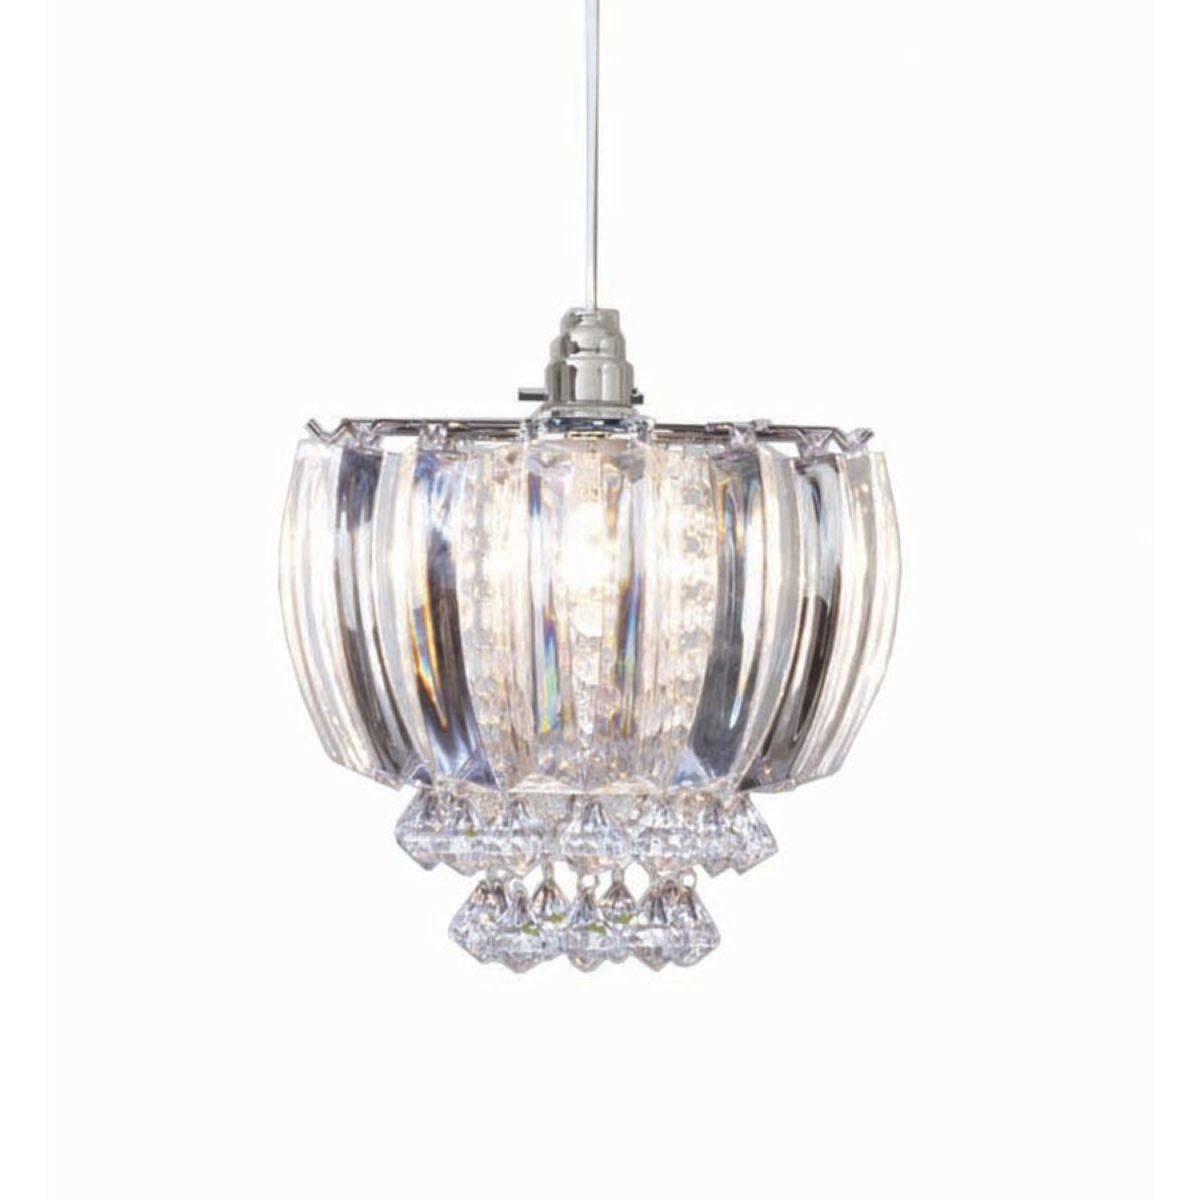 Village At Home Hastings Pendant Light